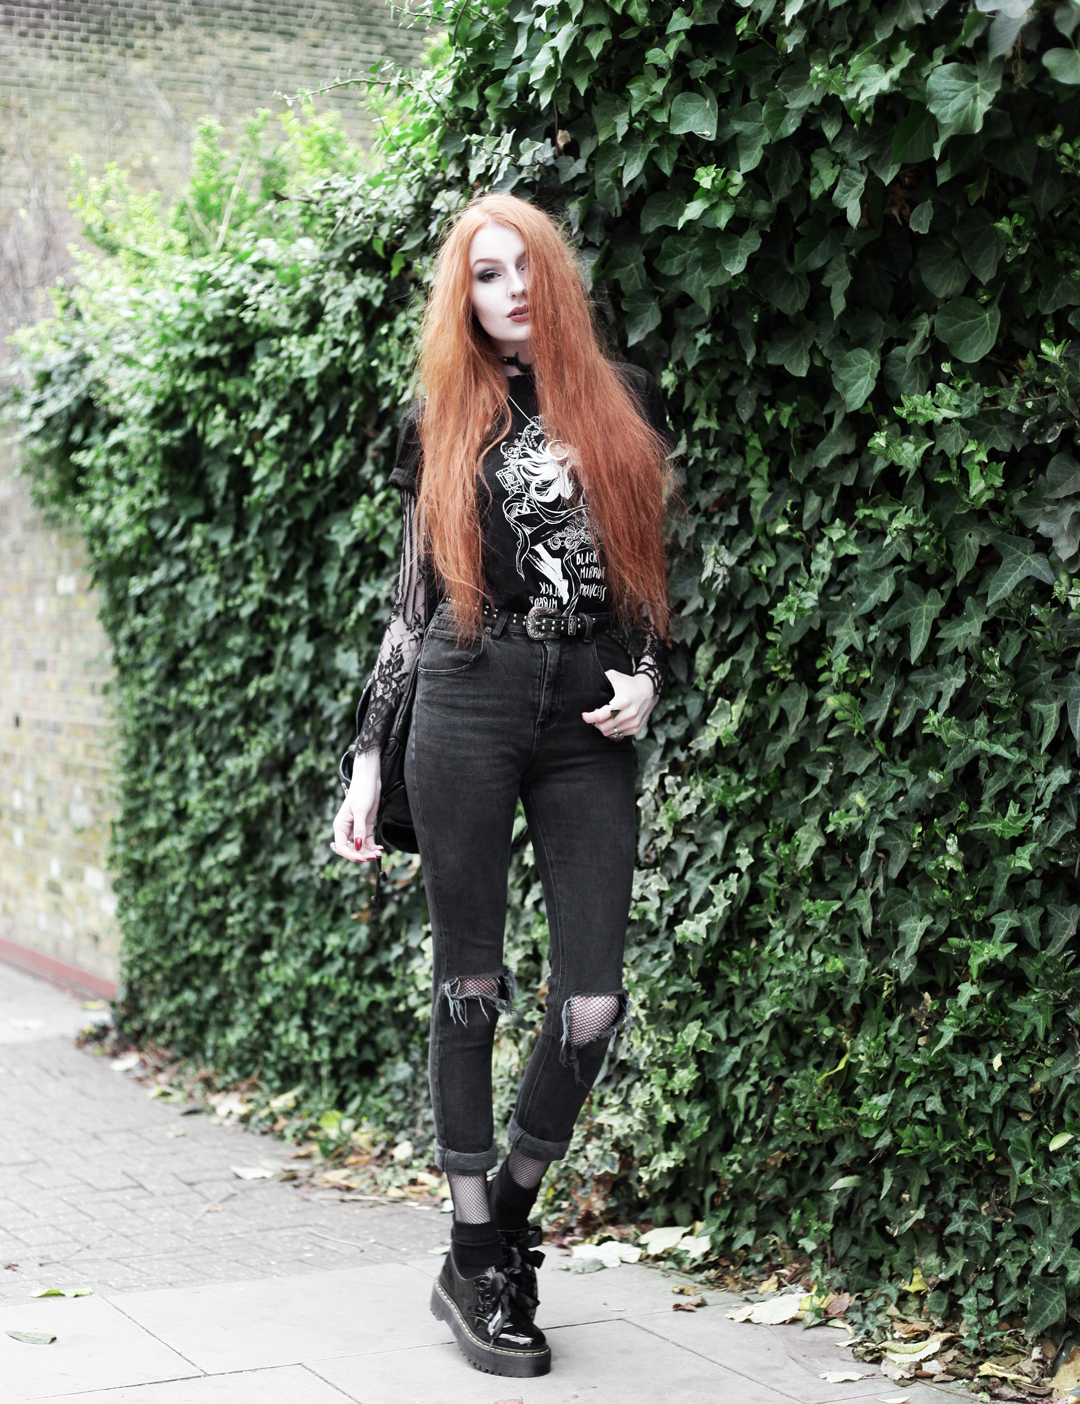 Olivia Emily wears CosQueen Black Mirror Princess Tee, Motel Black Lace Top, Asos Western Belt, Asos High Waisted Ripped Jeans, Dr Martens Patent Holly Shoes